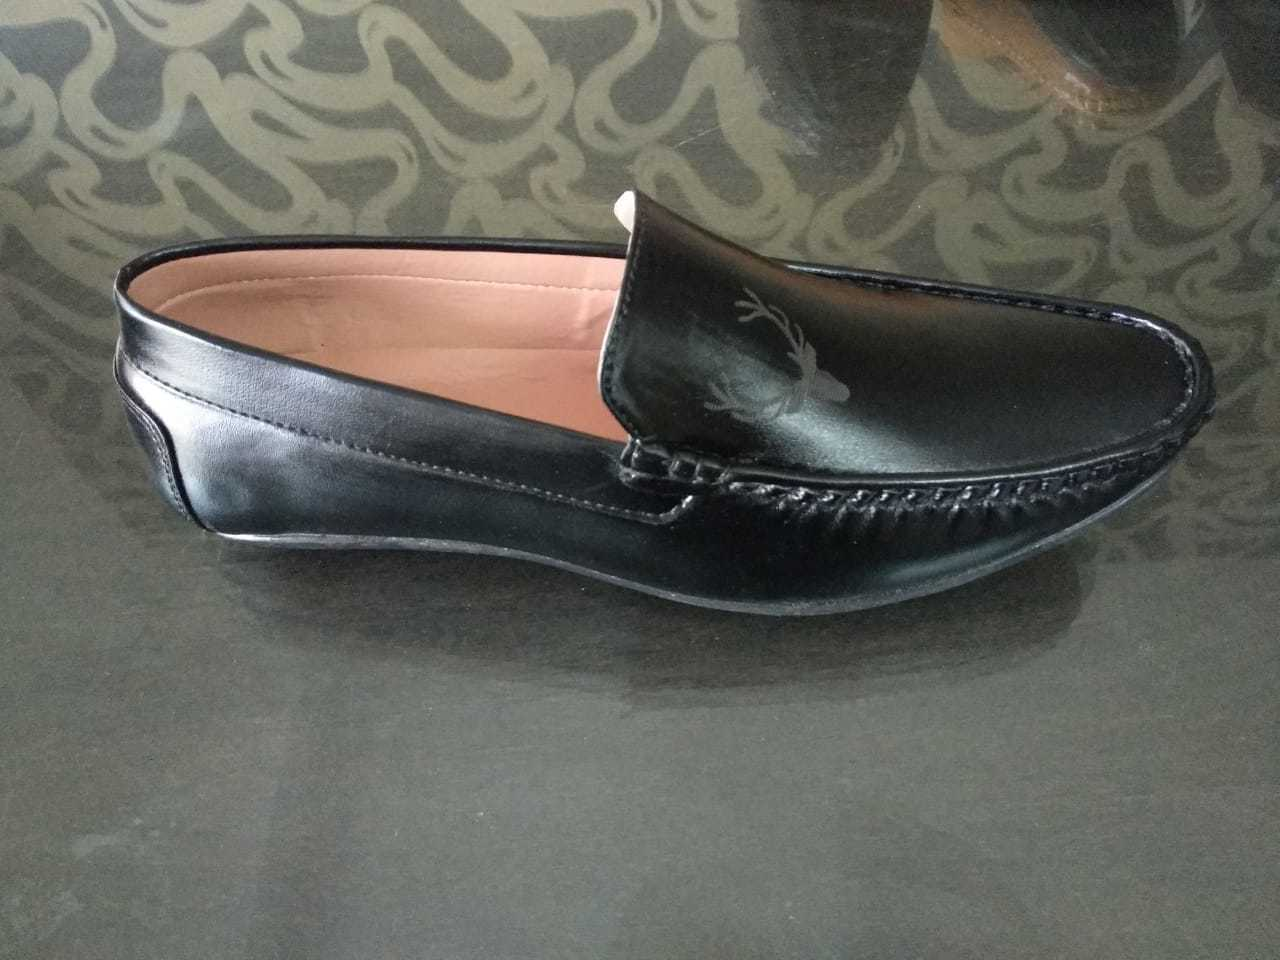 CASUAL LOAFERS SHOES FOR MEN'S IN BLACK COLOUR